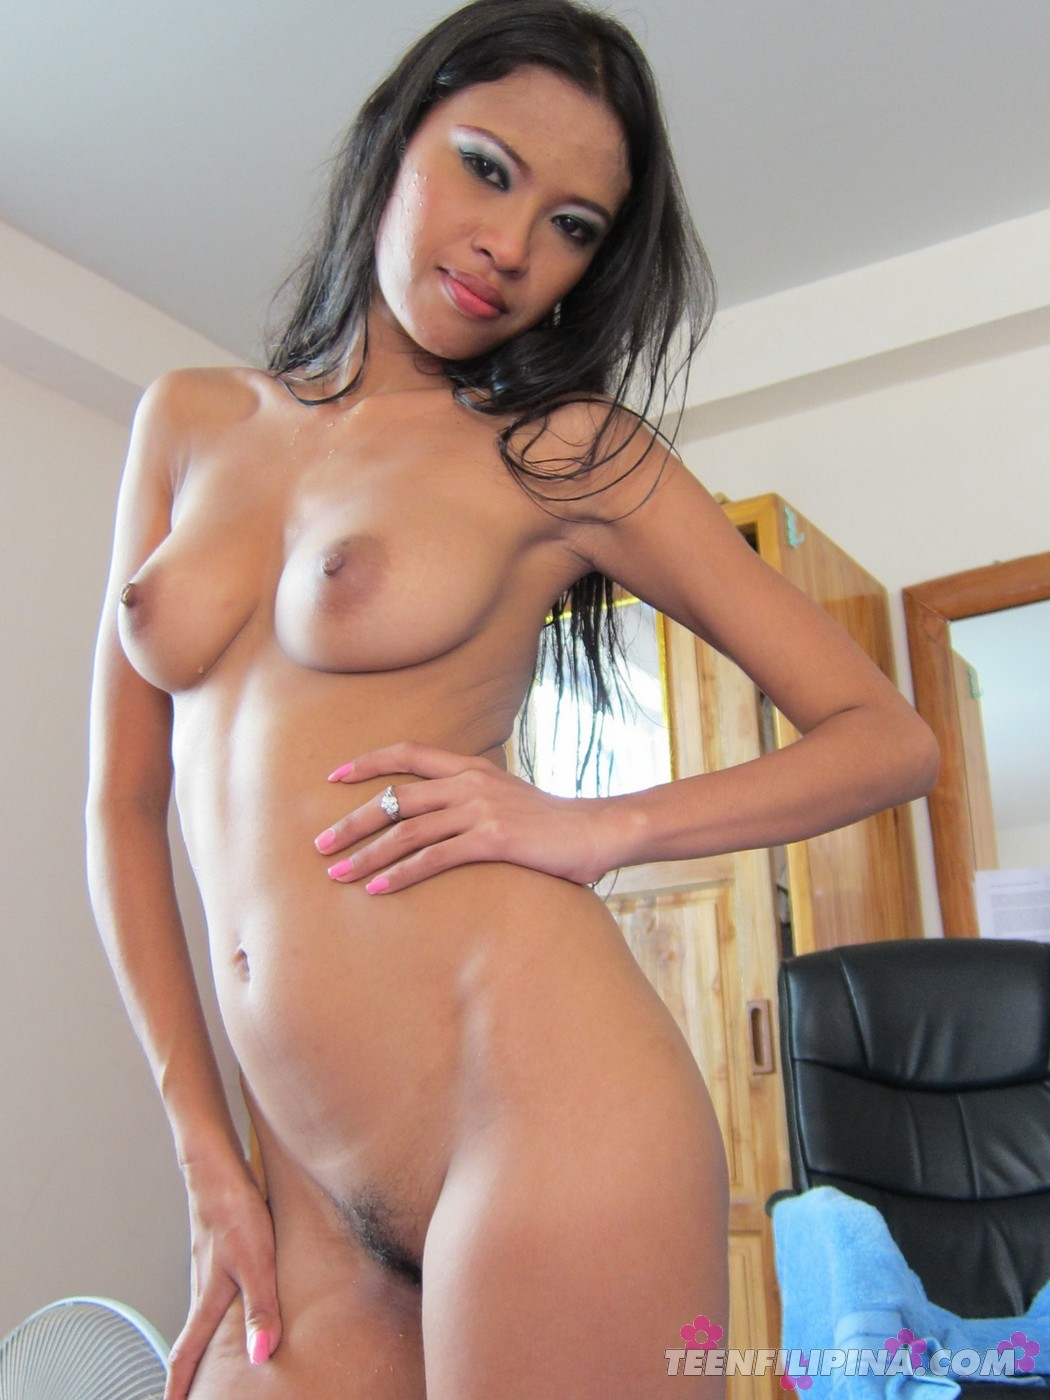 Sexy star filipina nude this intelligible